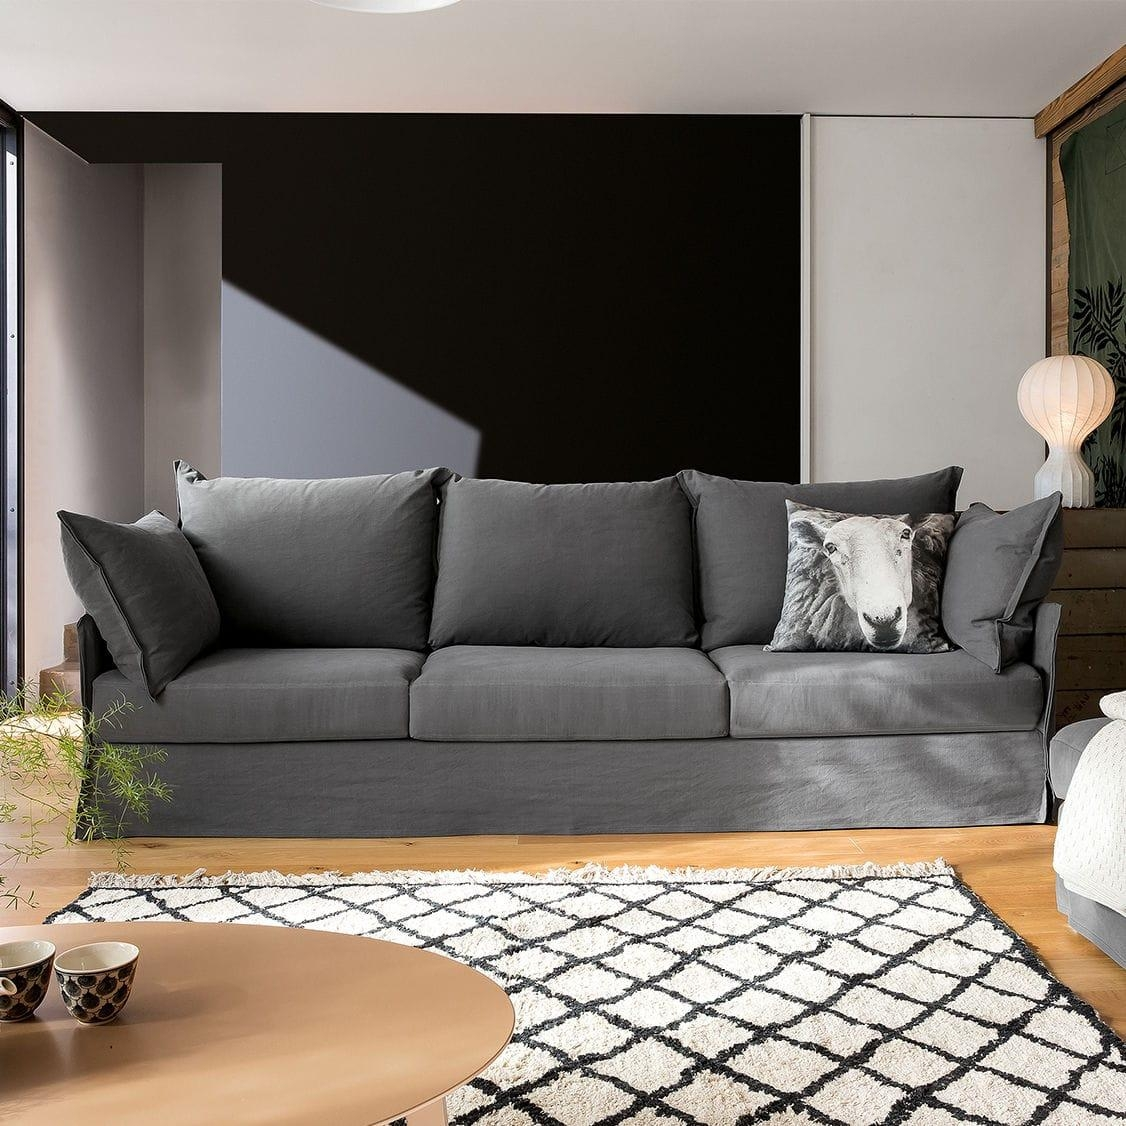 Modular Sofa / Contemporary / 3 Seater / With Removable Cover Inside Sofas With Removable Covers (Image 10 of 20)